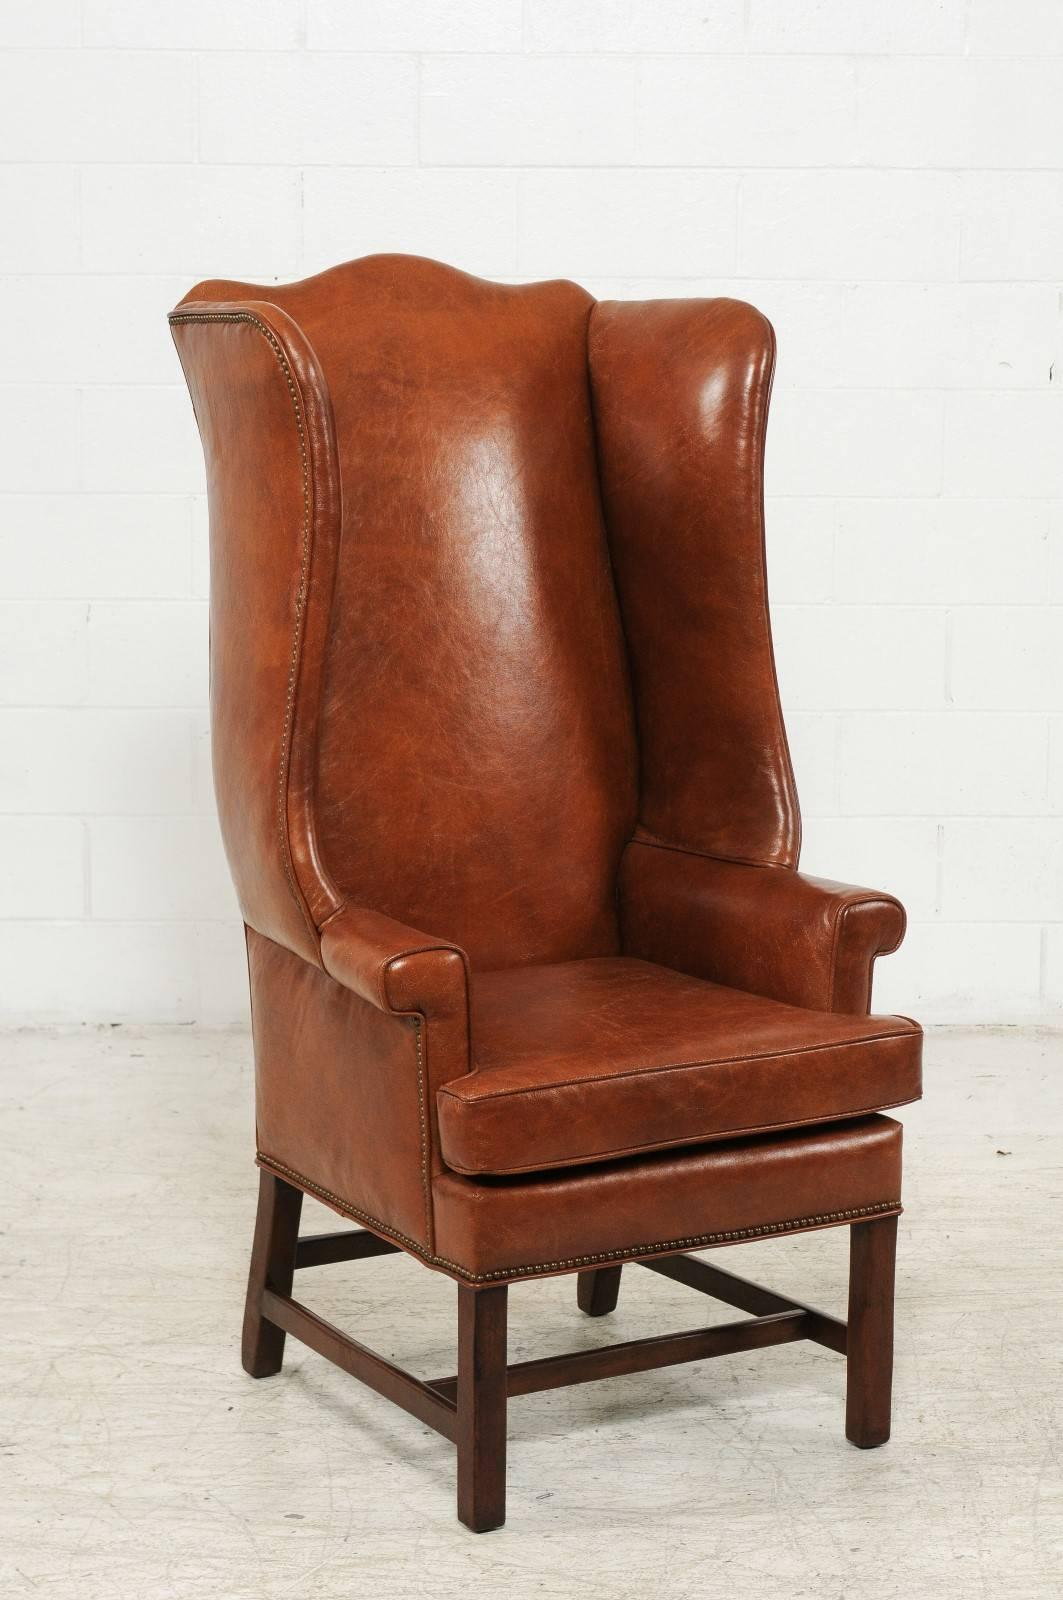 Mid-Century Modern Vintage English Midcentury Brown Leather Wingback Chair with Brass Nailhead Trim For & Vintage English Midcentury Brown Leather Wingback Chair with Brass ...